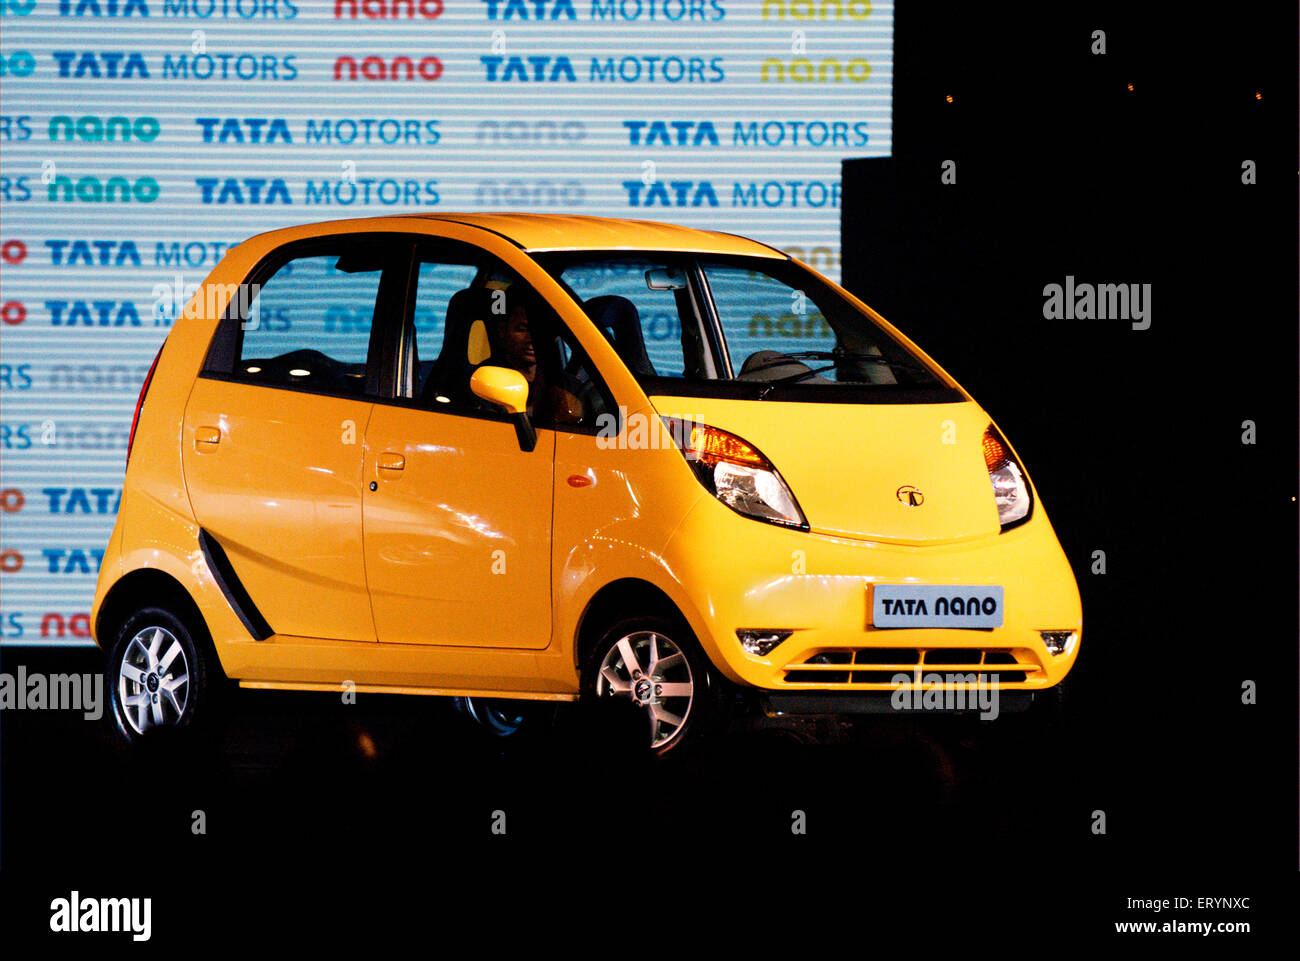 postioning of tata nano The tata nano is a city car manufactured by tata motors made and sold primarily in india the nano was initially launched with a price of one lakh rupees or.